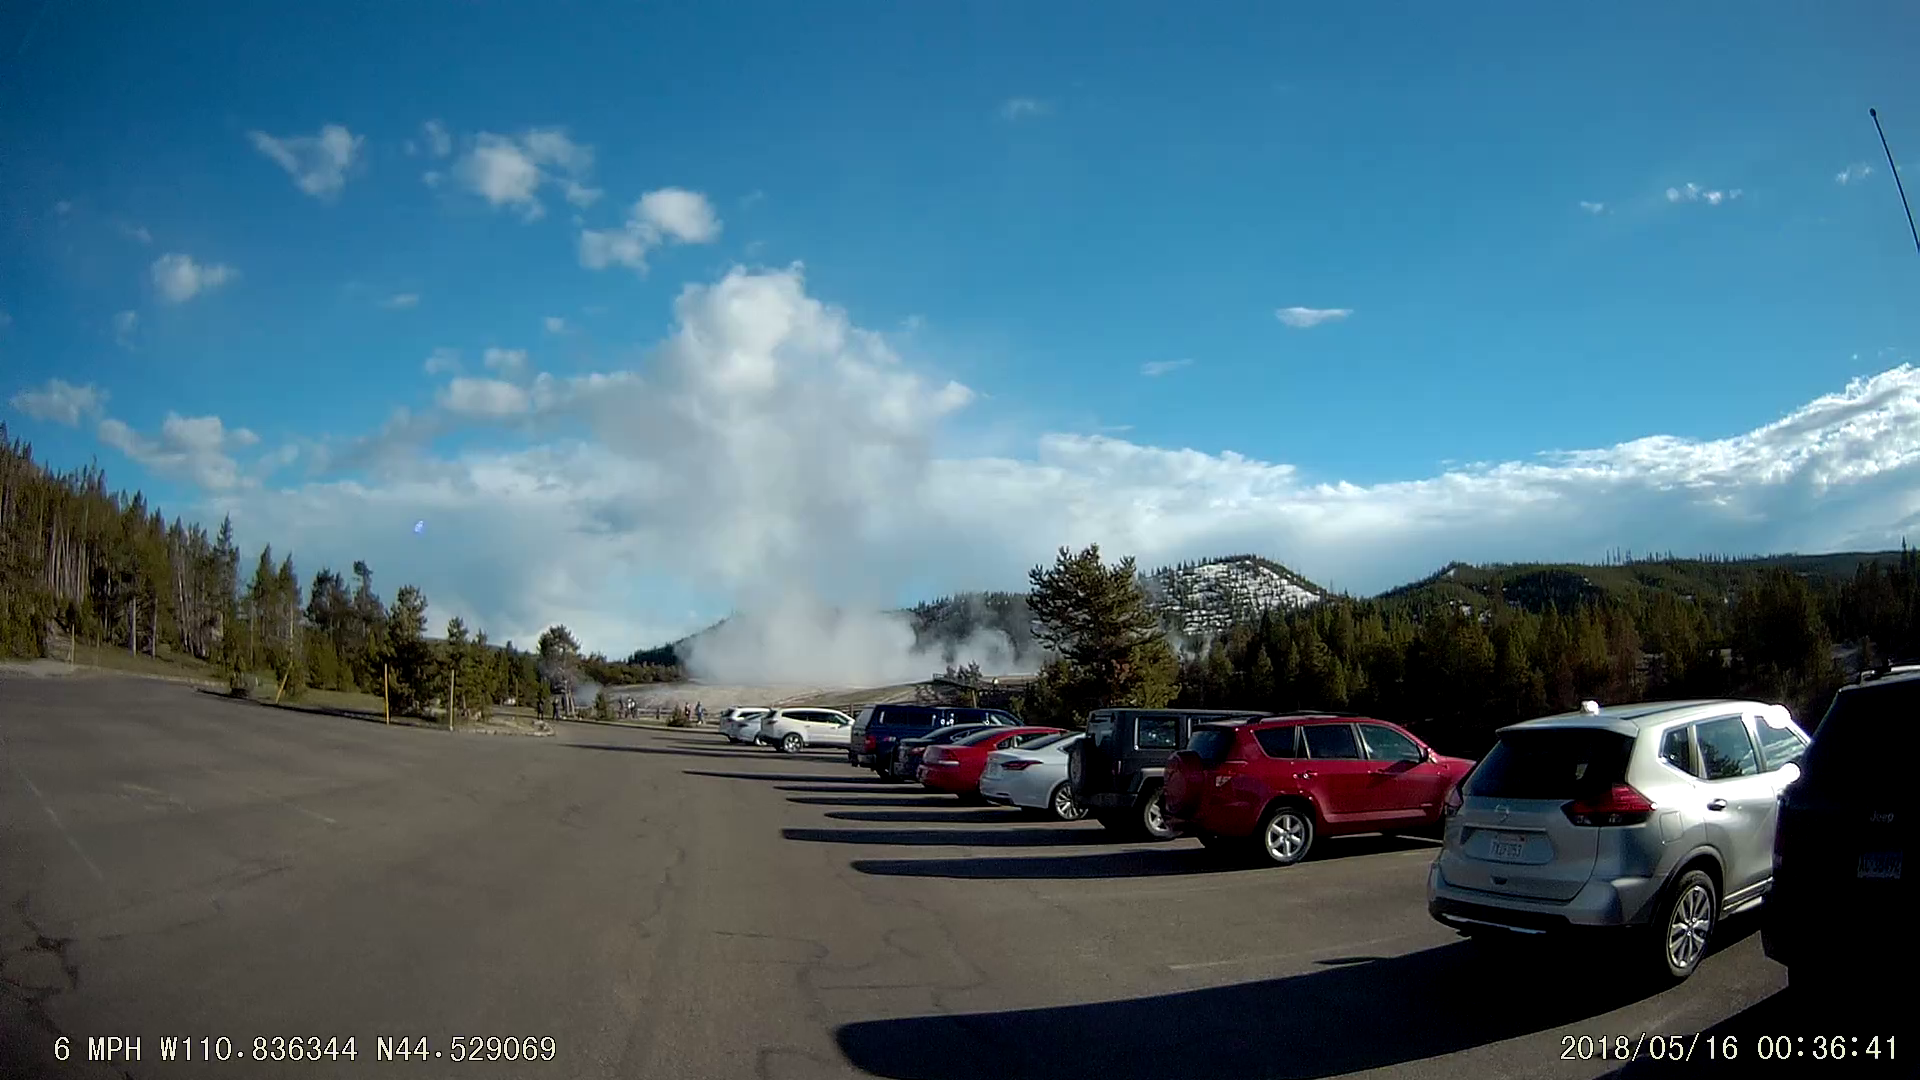 a screencap from dashcam footage showing a geyser erupting from a parking lot in Yellowstone National Park